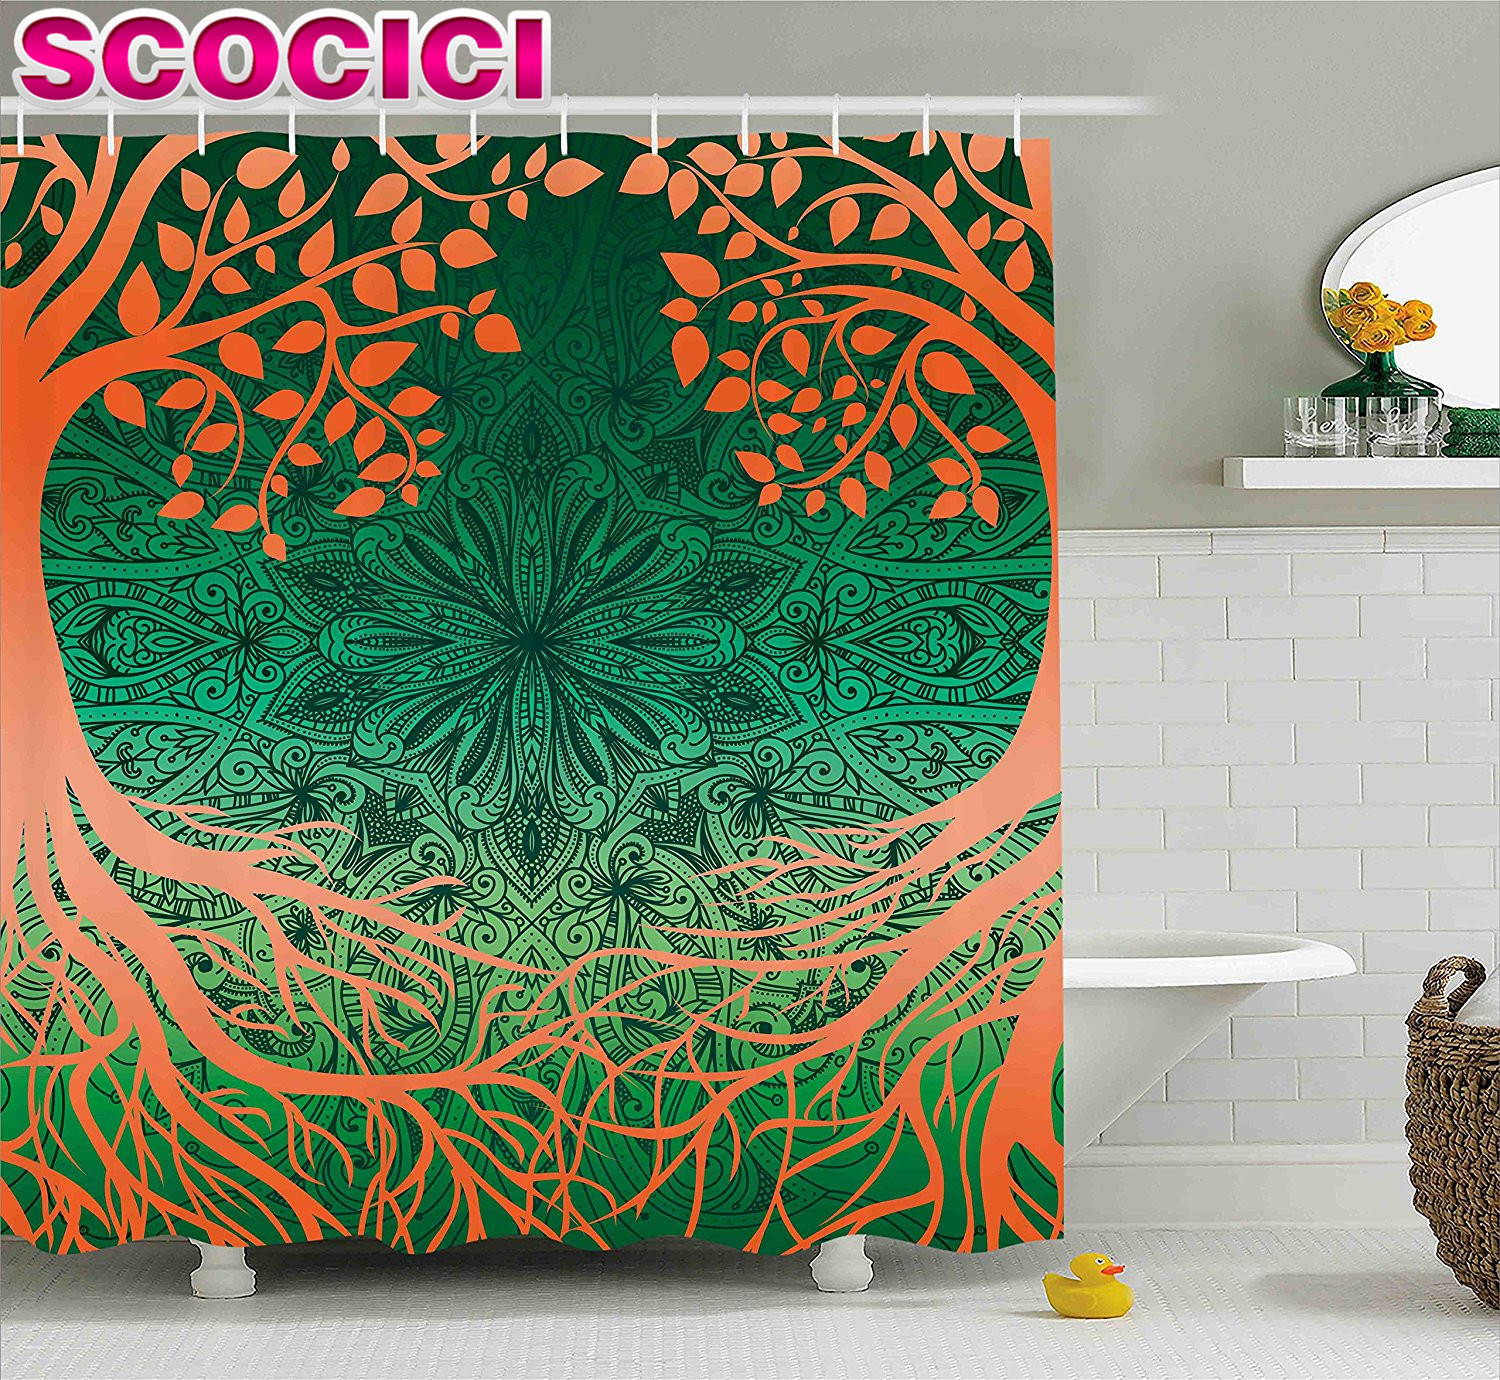 Green indian curtains - Indian Shower Curtain Asian Mandala Form Universe Symbol Cultural Pattern Surrounded By Branches Design Fabric Bathroom Decor Se